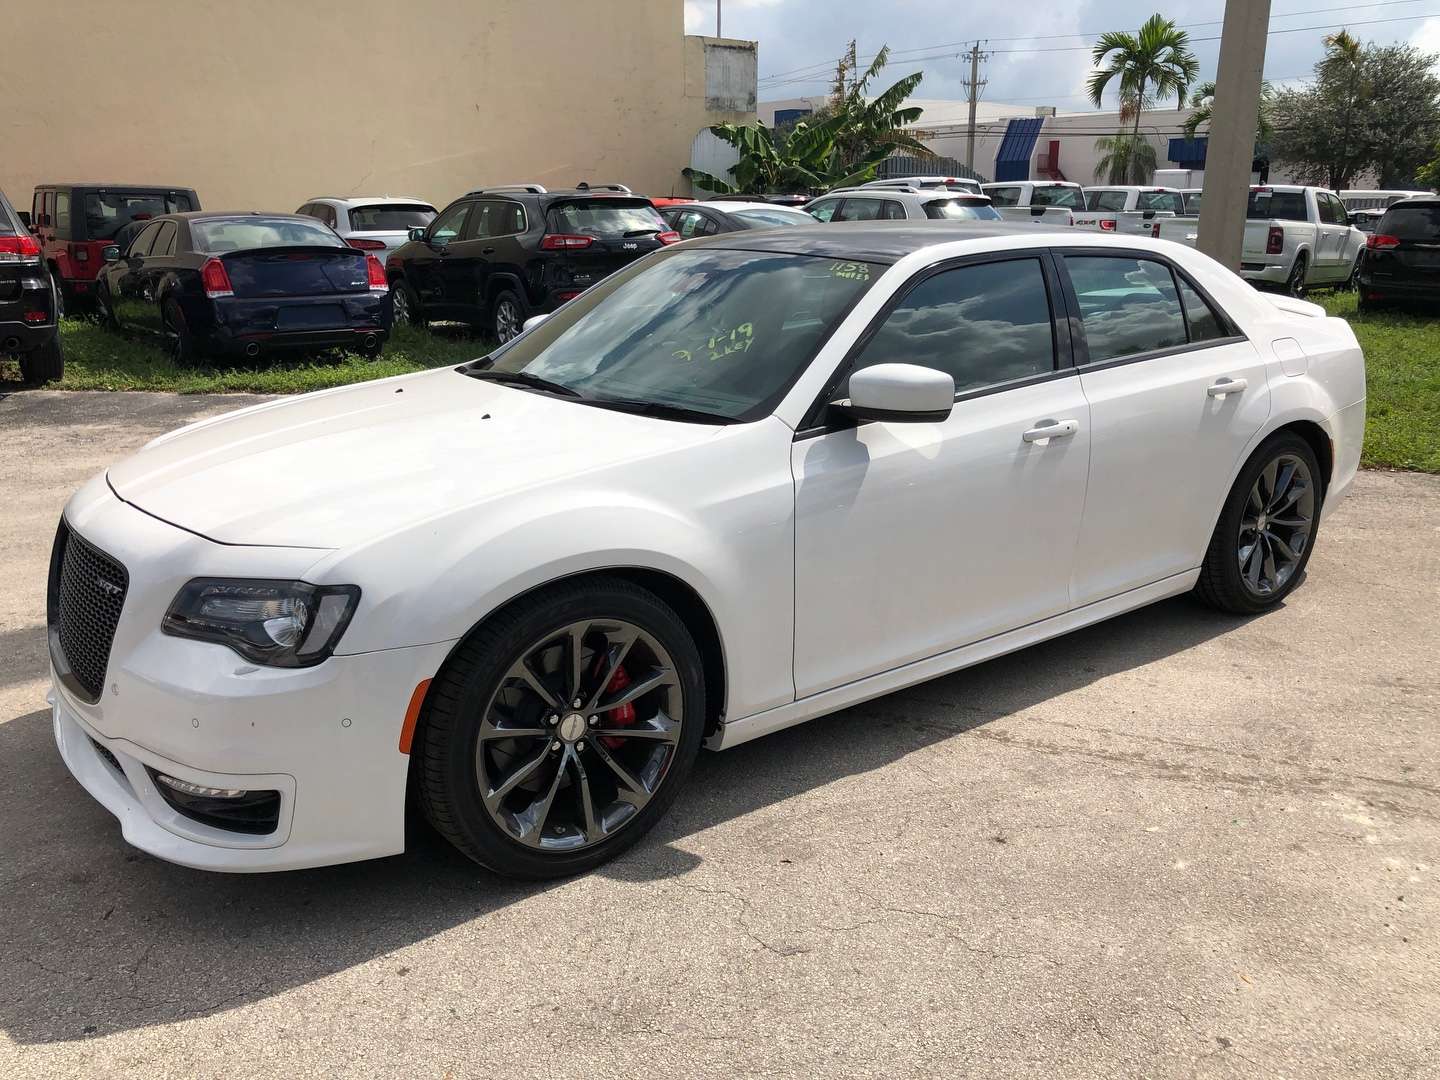 33644 - Special Factory Offers - RHD - 2018 Chrysler 300C SRT8 6.4L Petrol 8-Speed AT